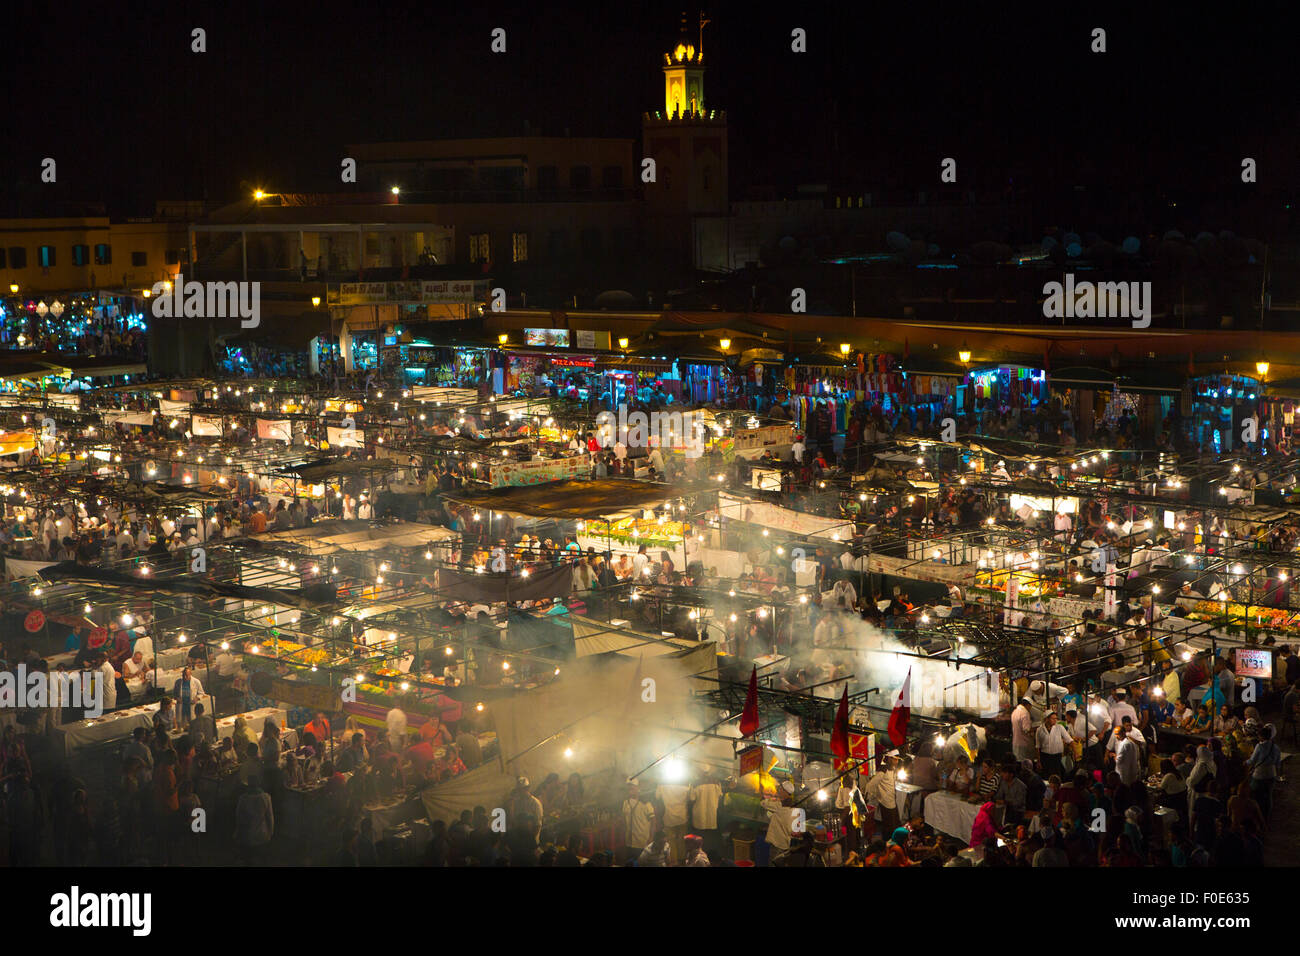 Djemaa el Fnaa is a square and market place in Marrakesh medina quarter. Morocco Stock Photo